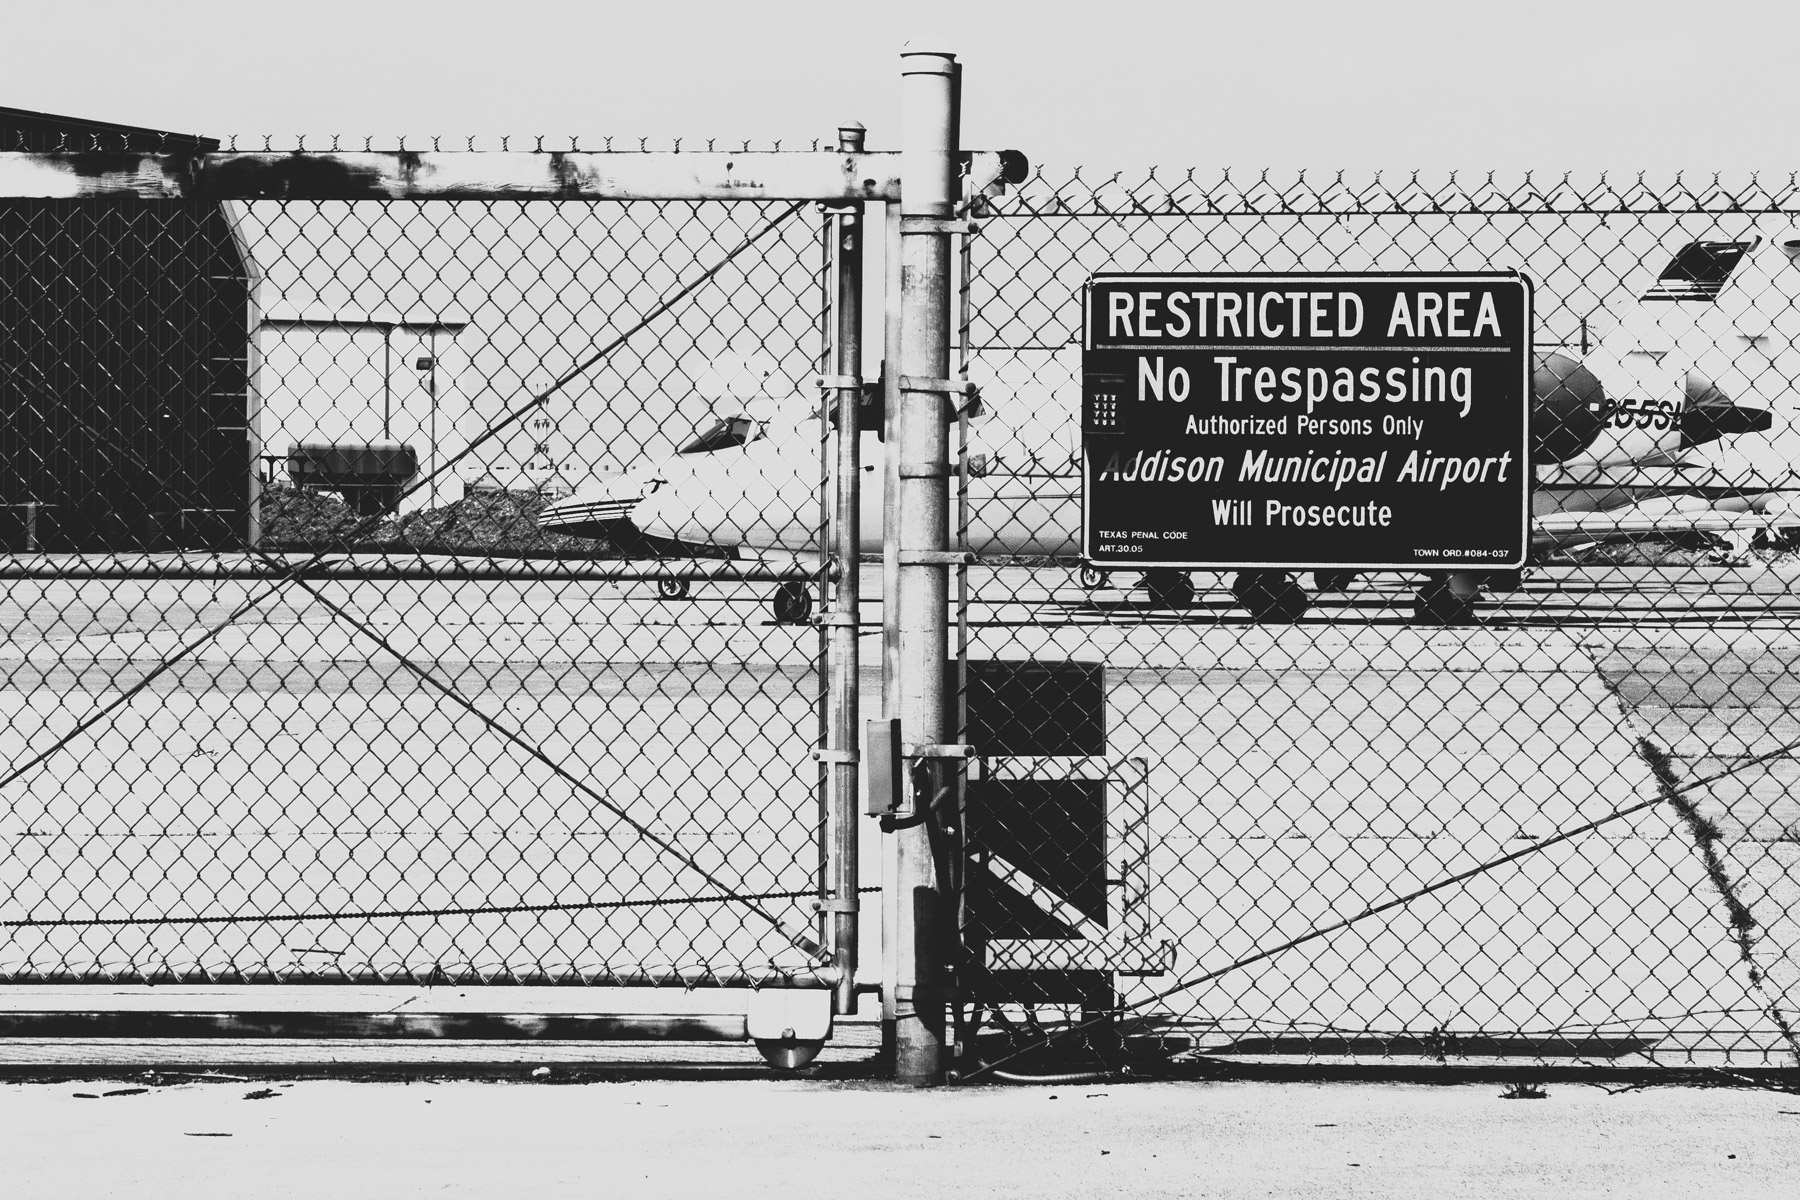 Jets behind a security fence at Addison Airport, Addison, Texas.